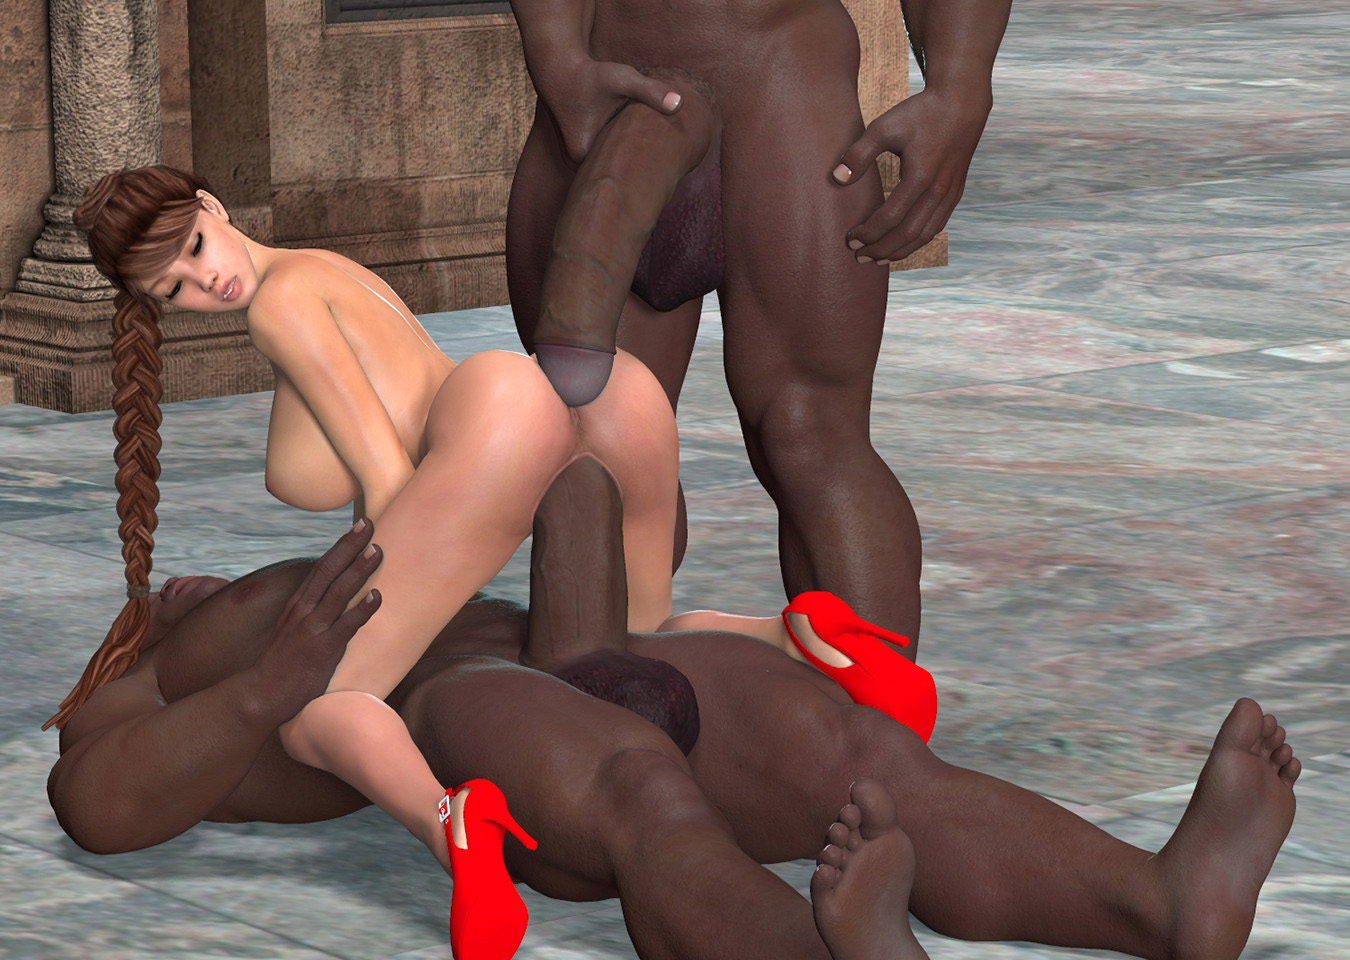 Free porn in 3d adult gallery